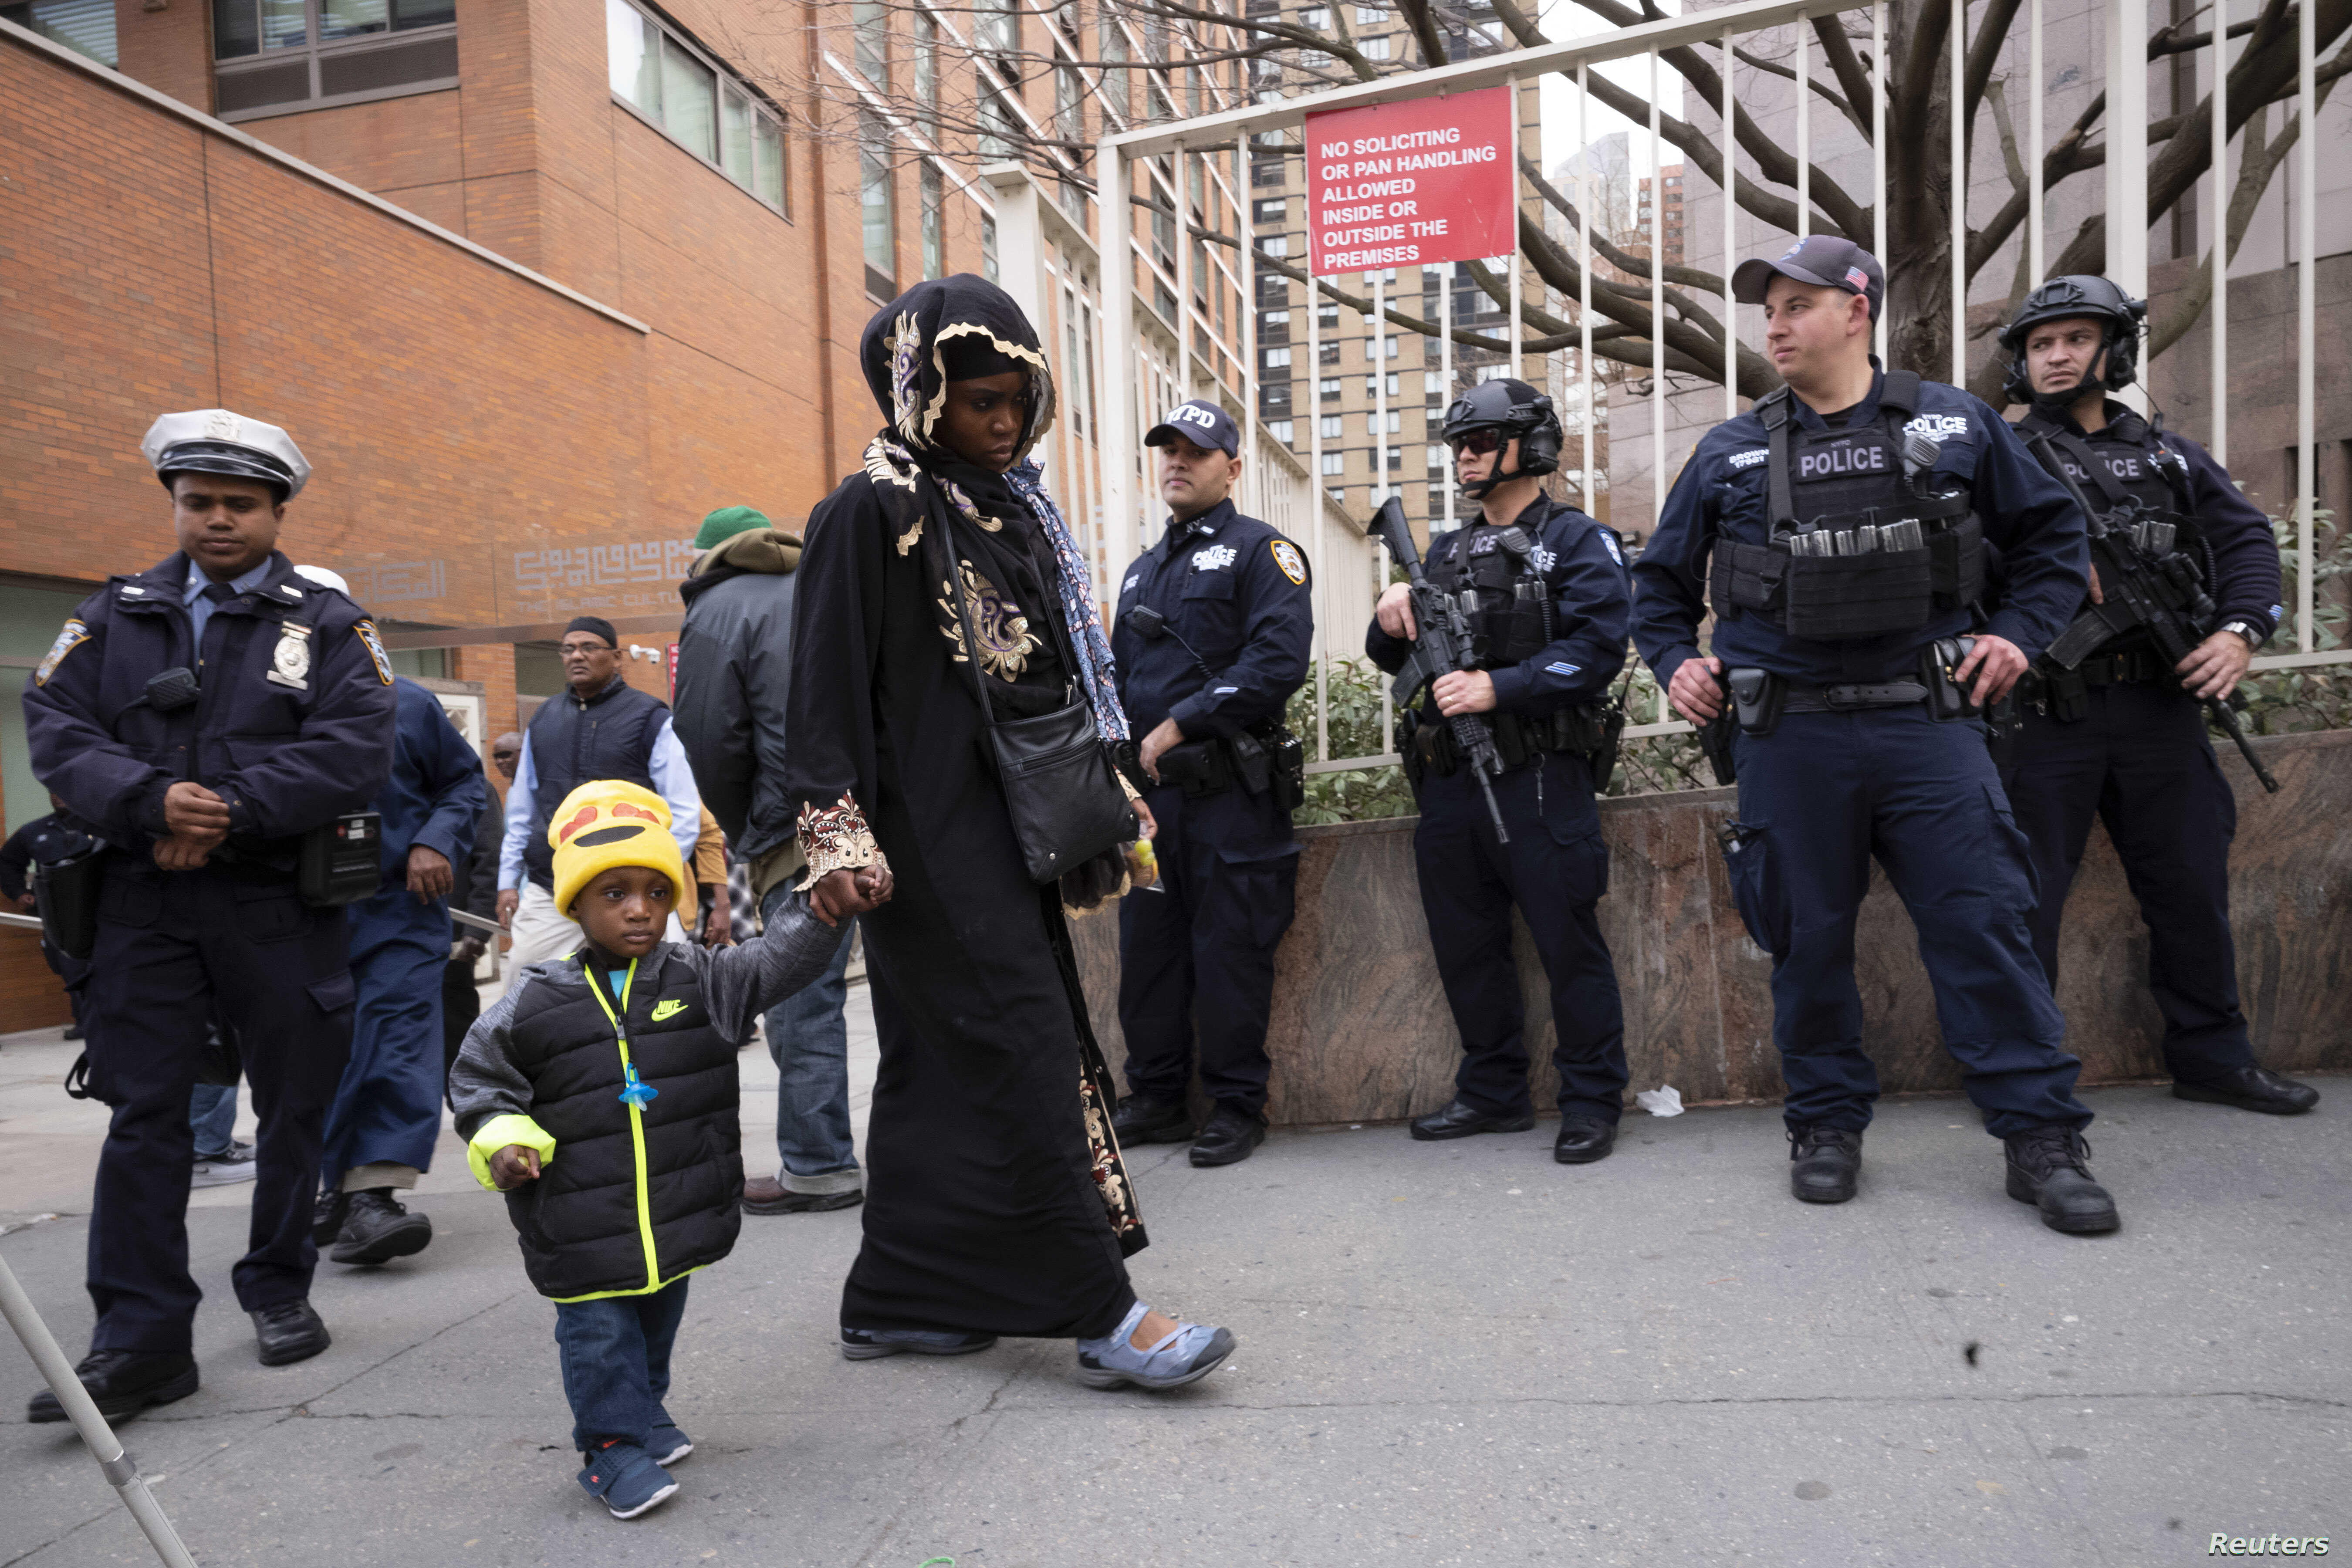 People leave the Islamic Cultural Center of New York under increased police security following the shooting in New Zealand,  March 15, 2019, in New York.